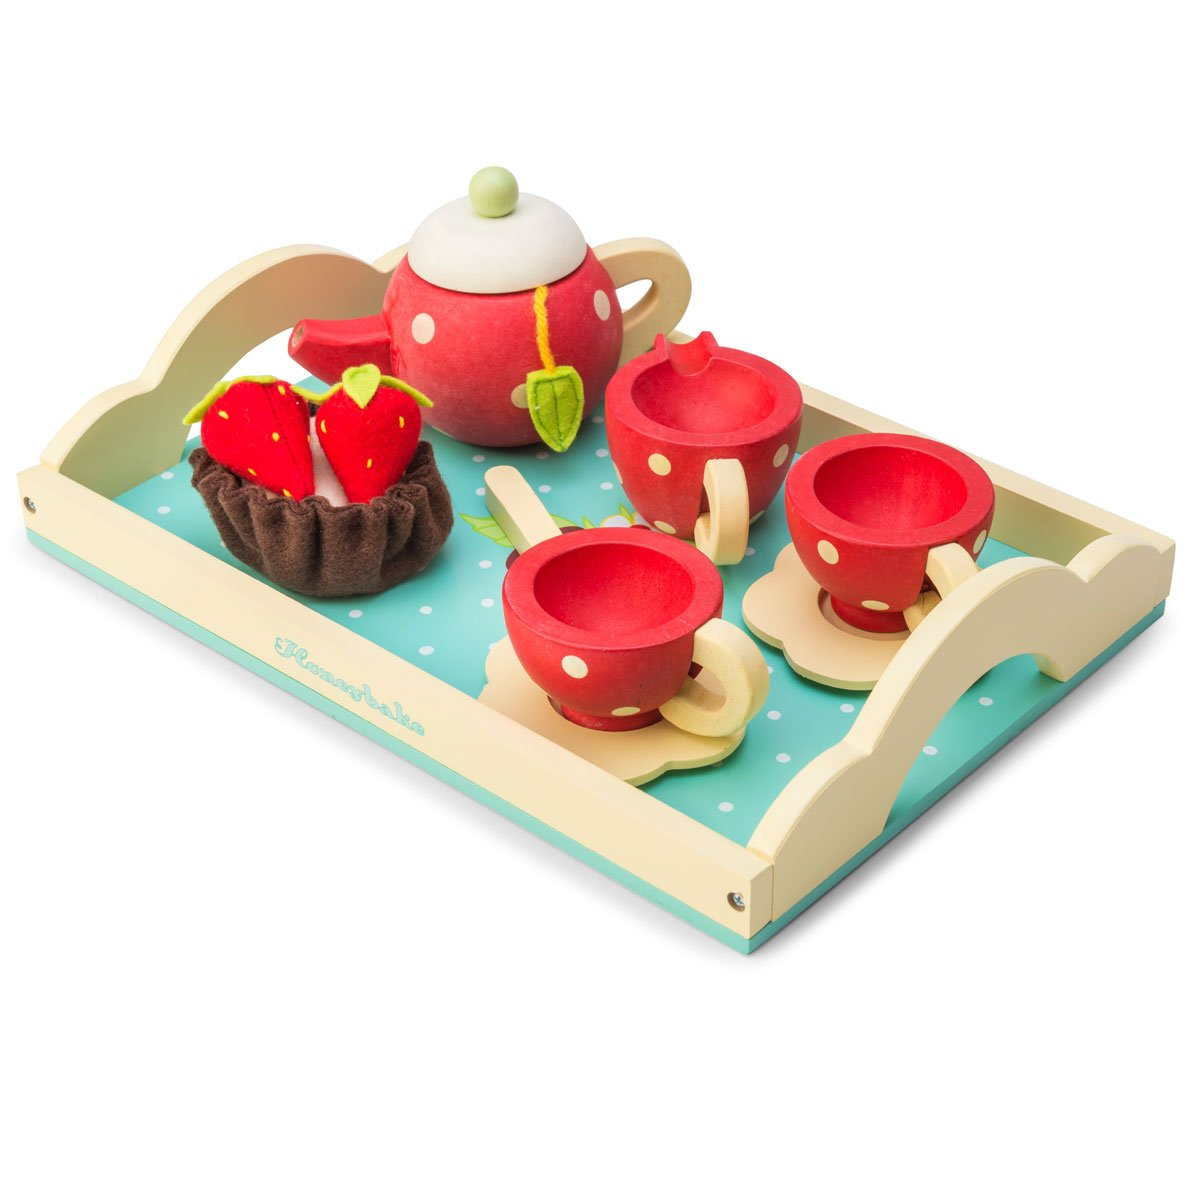 Le Toy Van Honeybee Tea Set